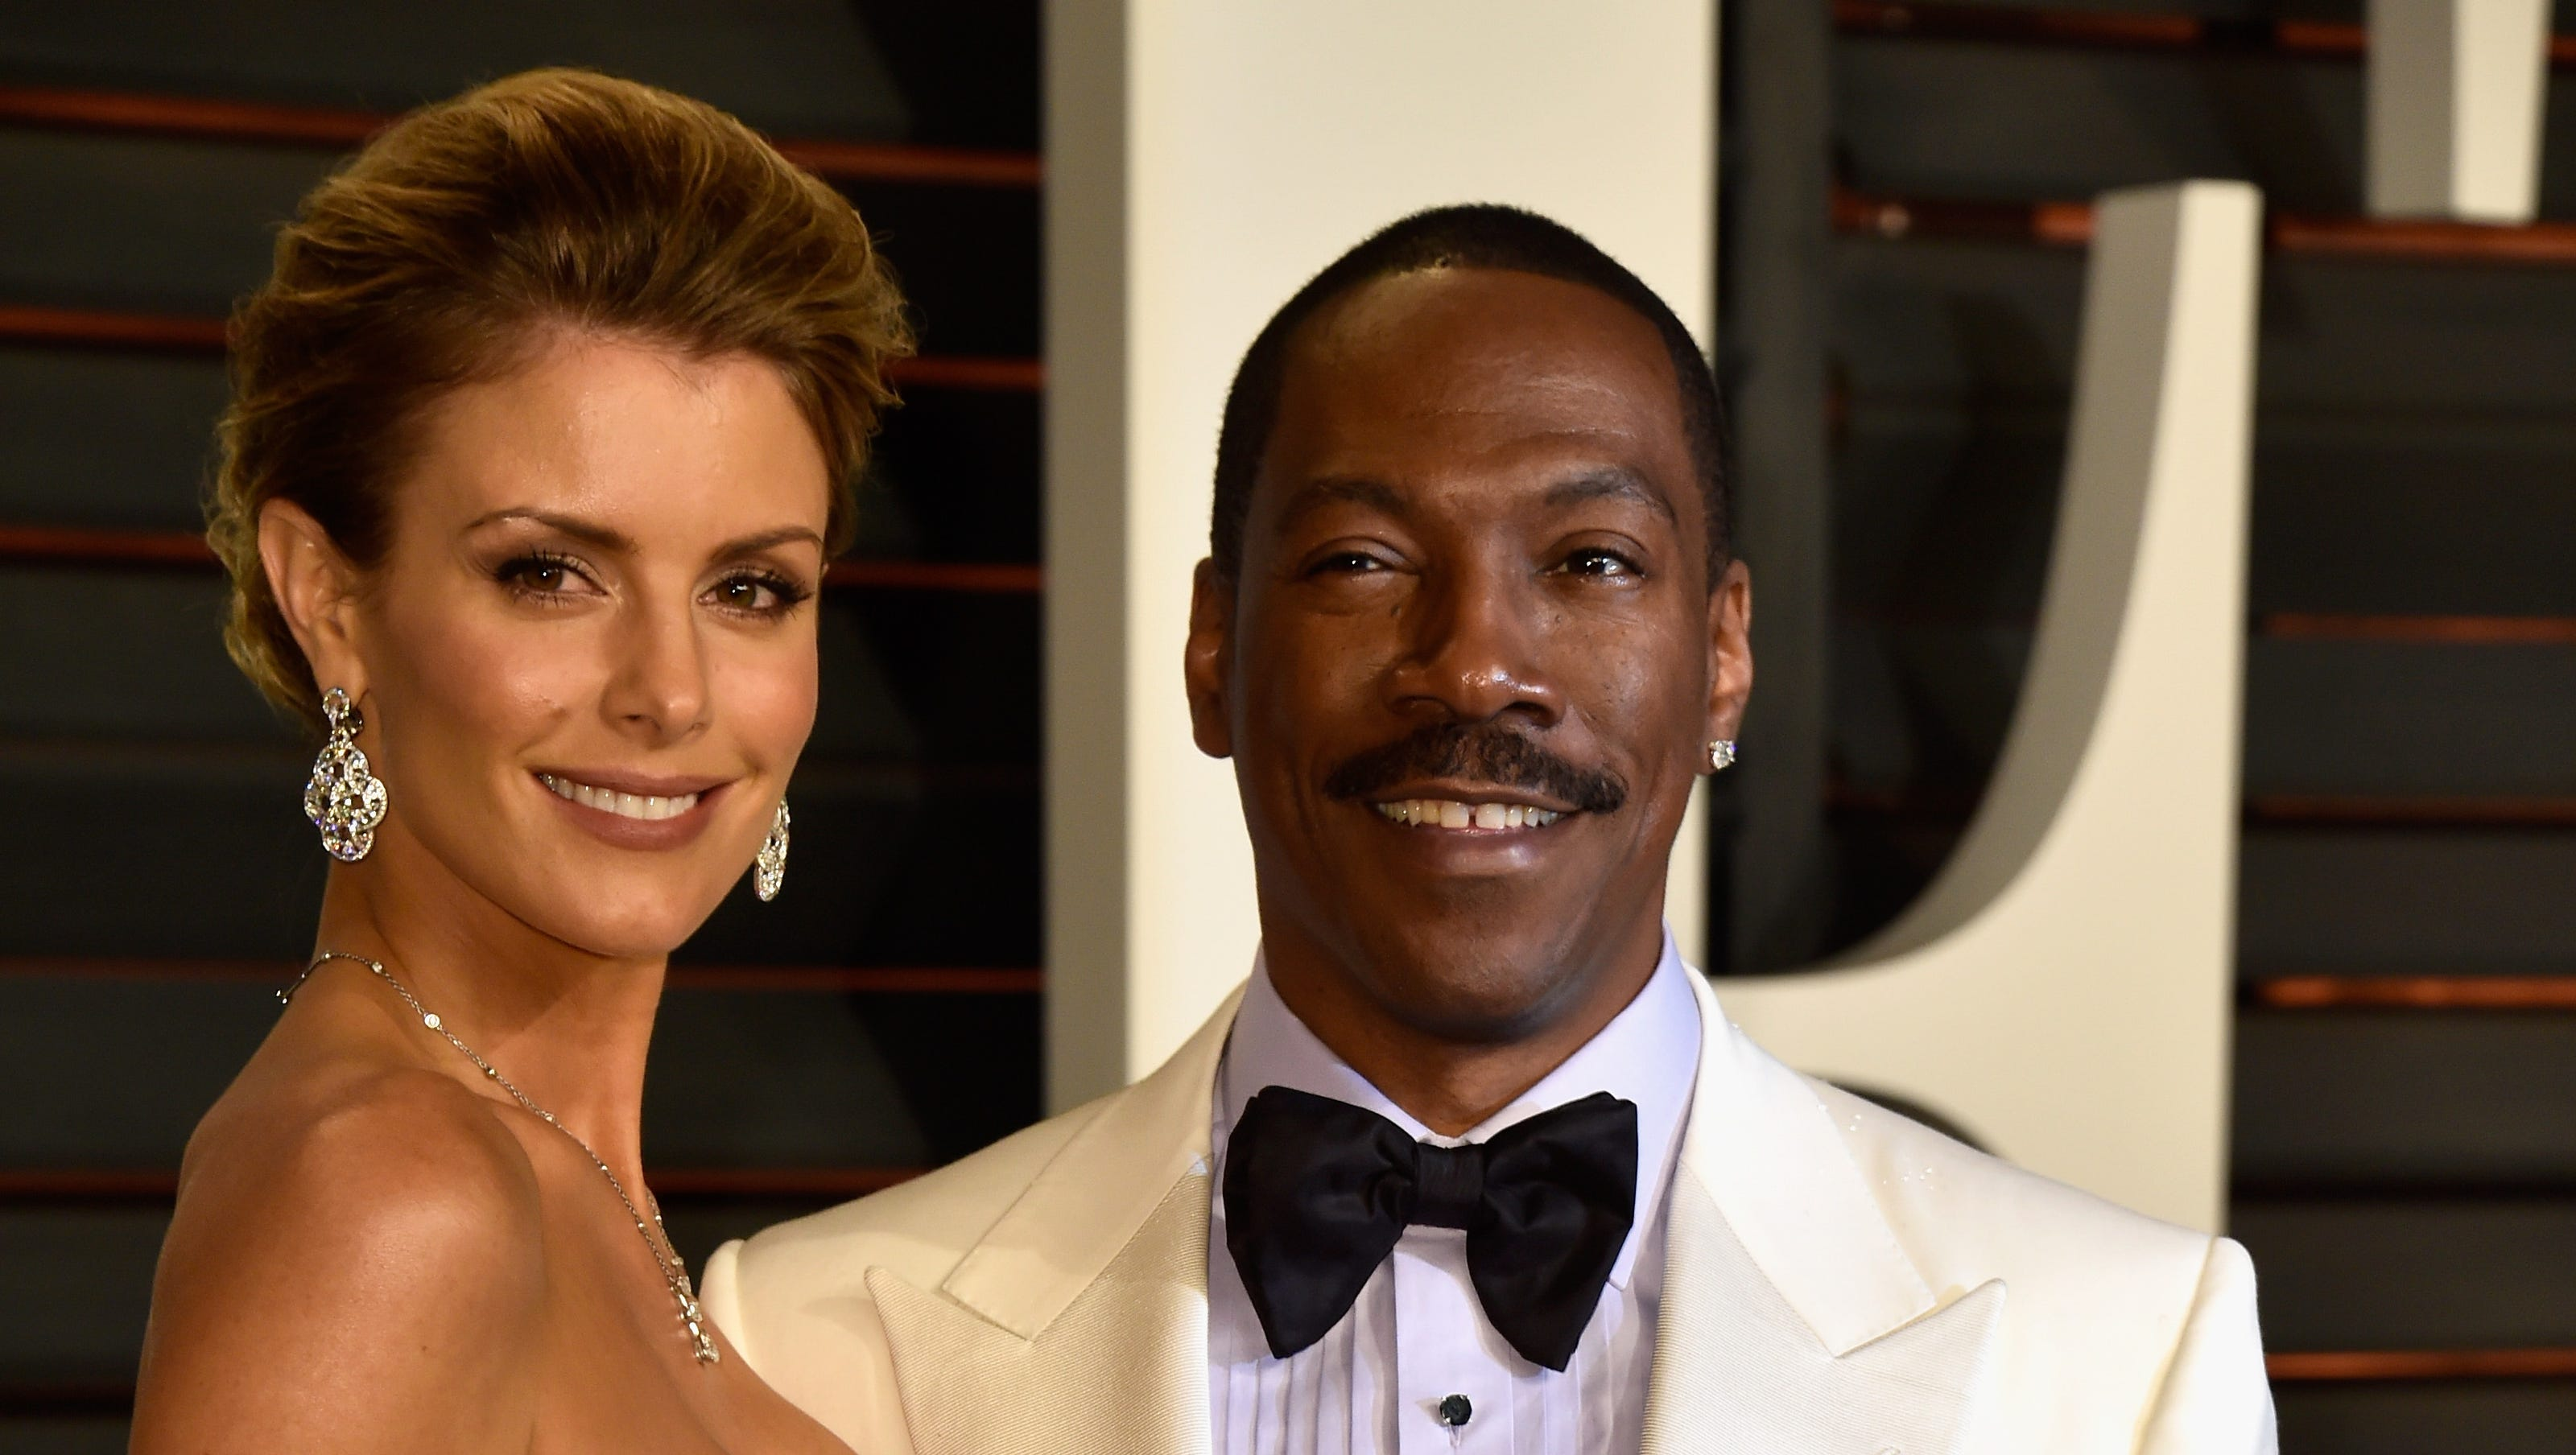 Eddie Murphy has child number 10, a baby boy named Max